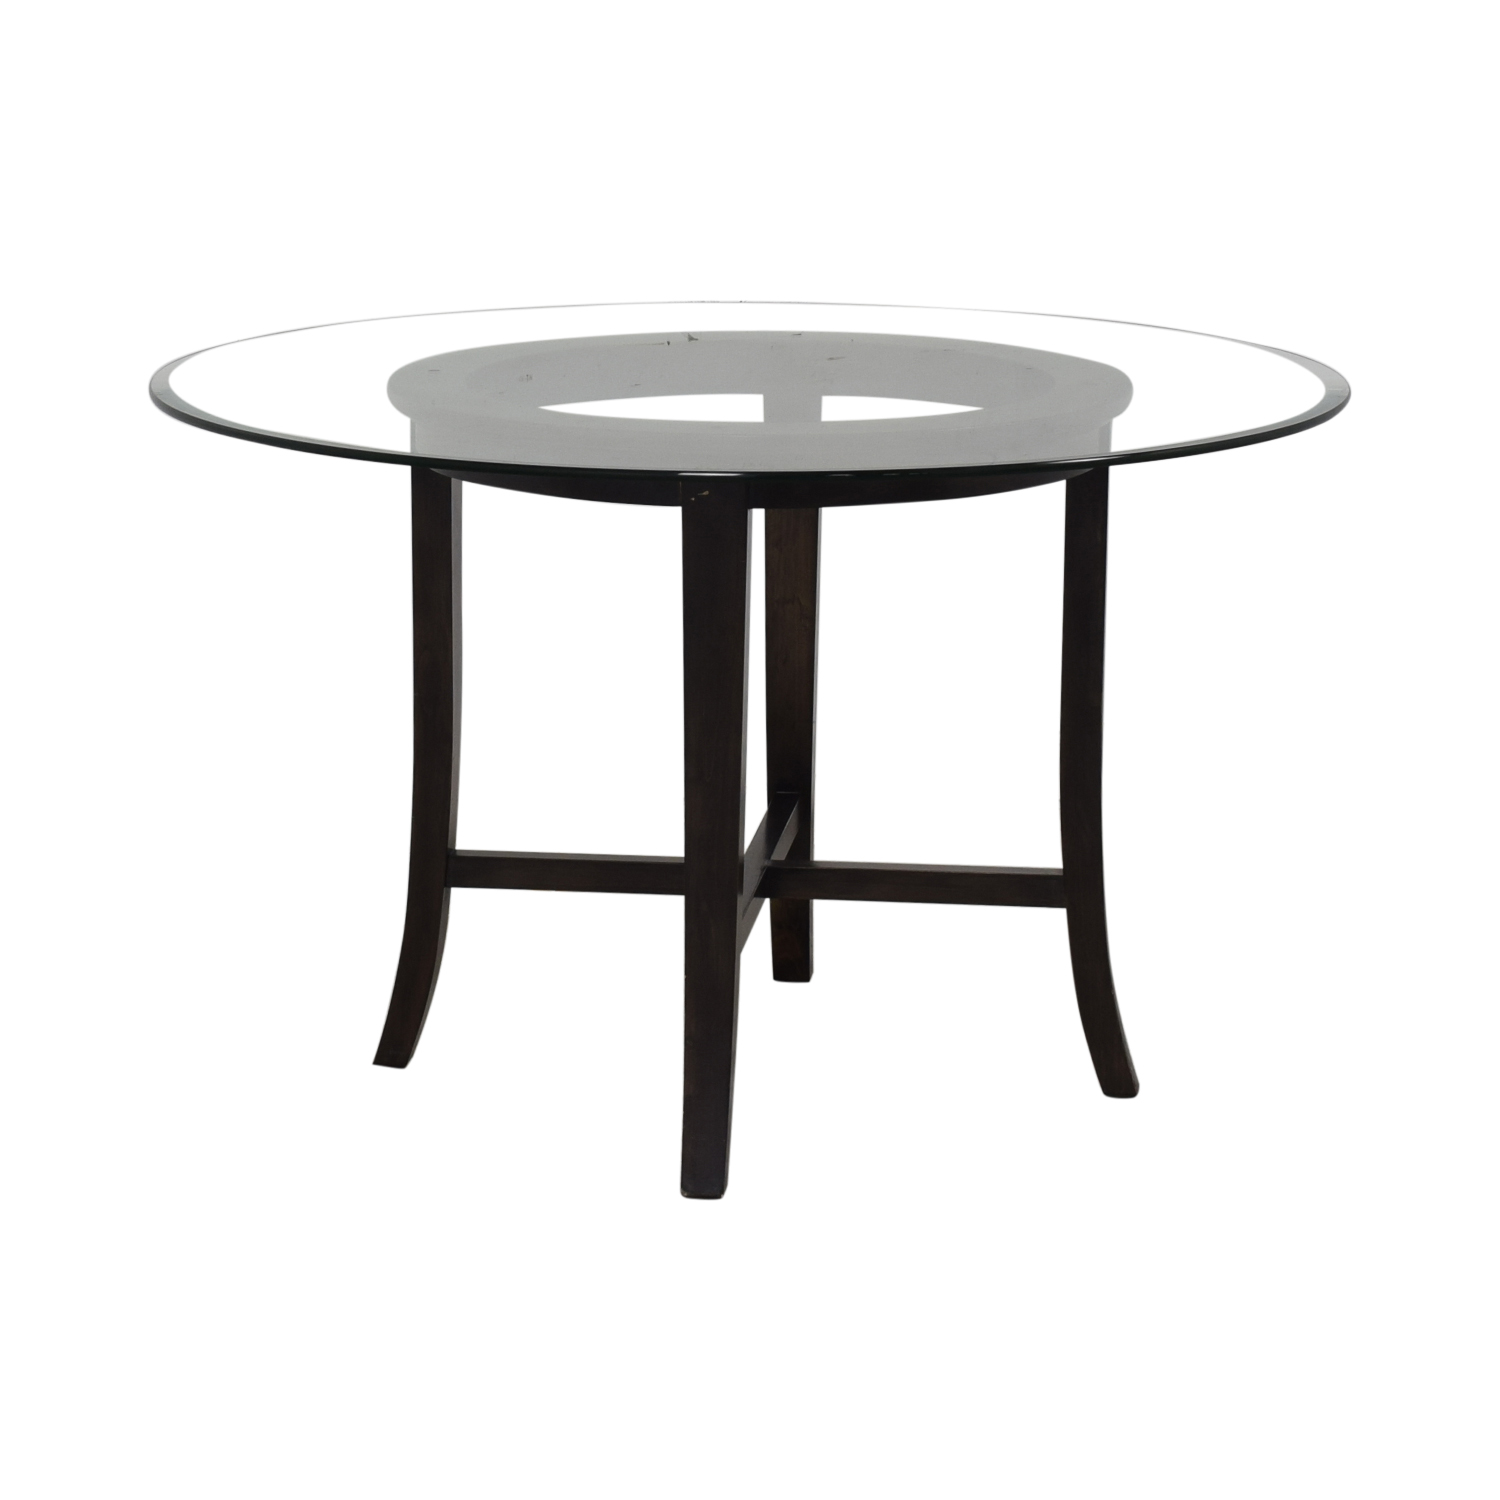 Crate & Barrel Crate & Barrel Halo Round Glass Dining Table discount